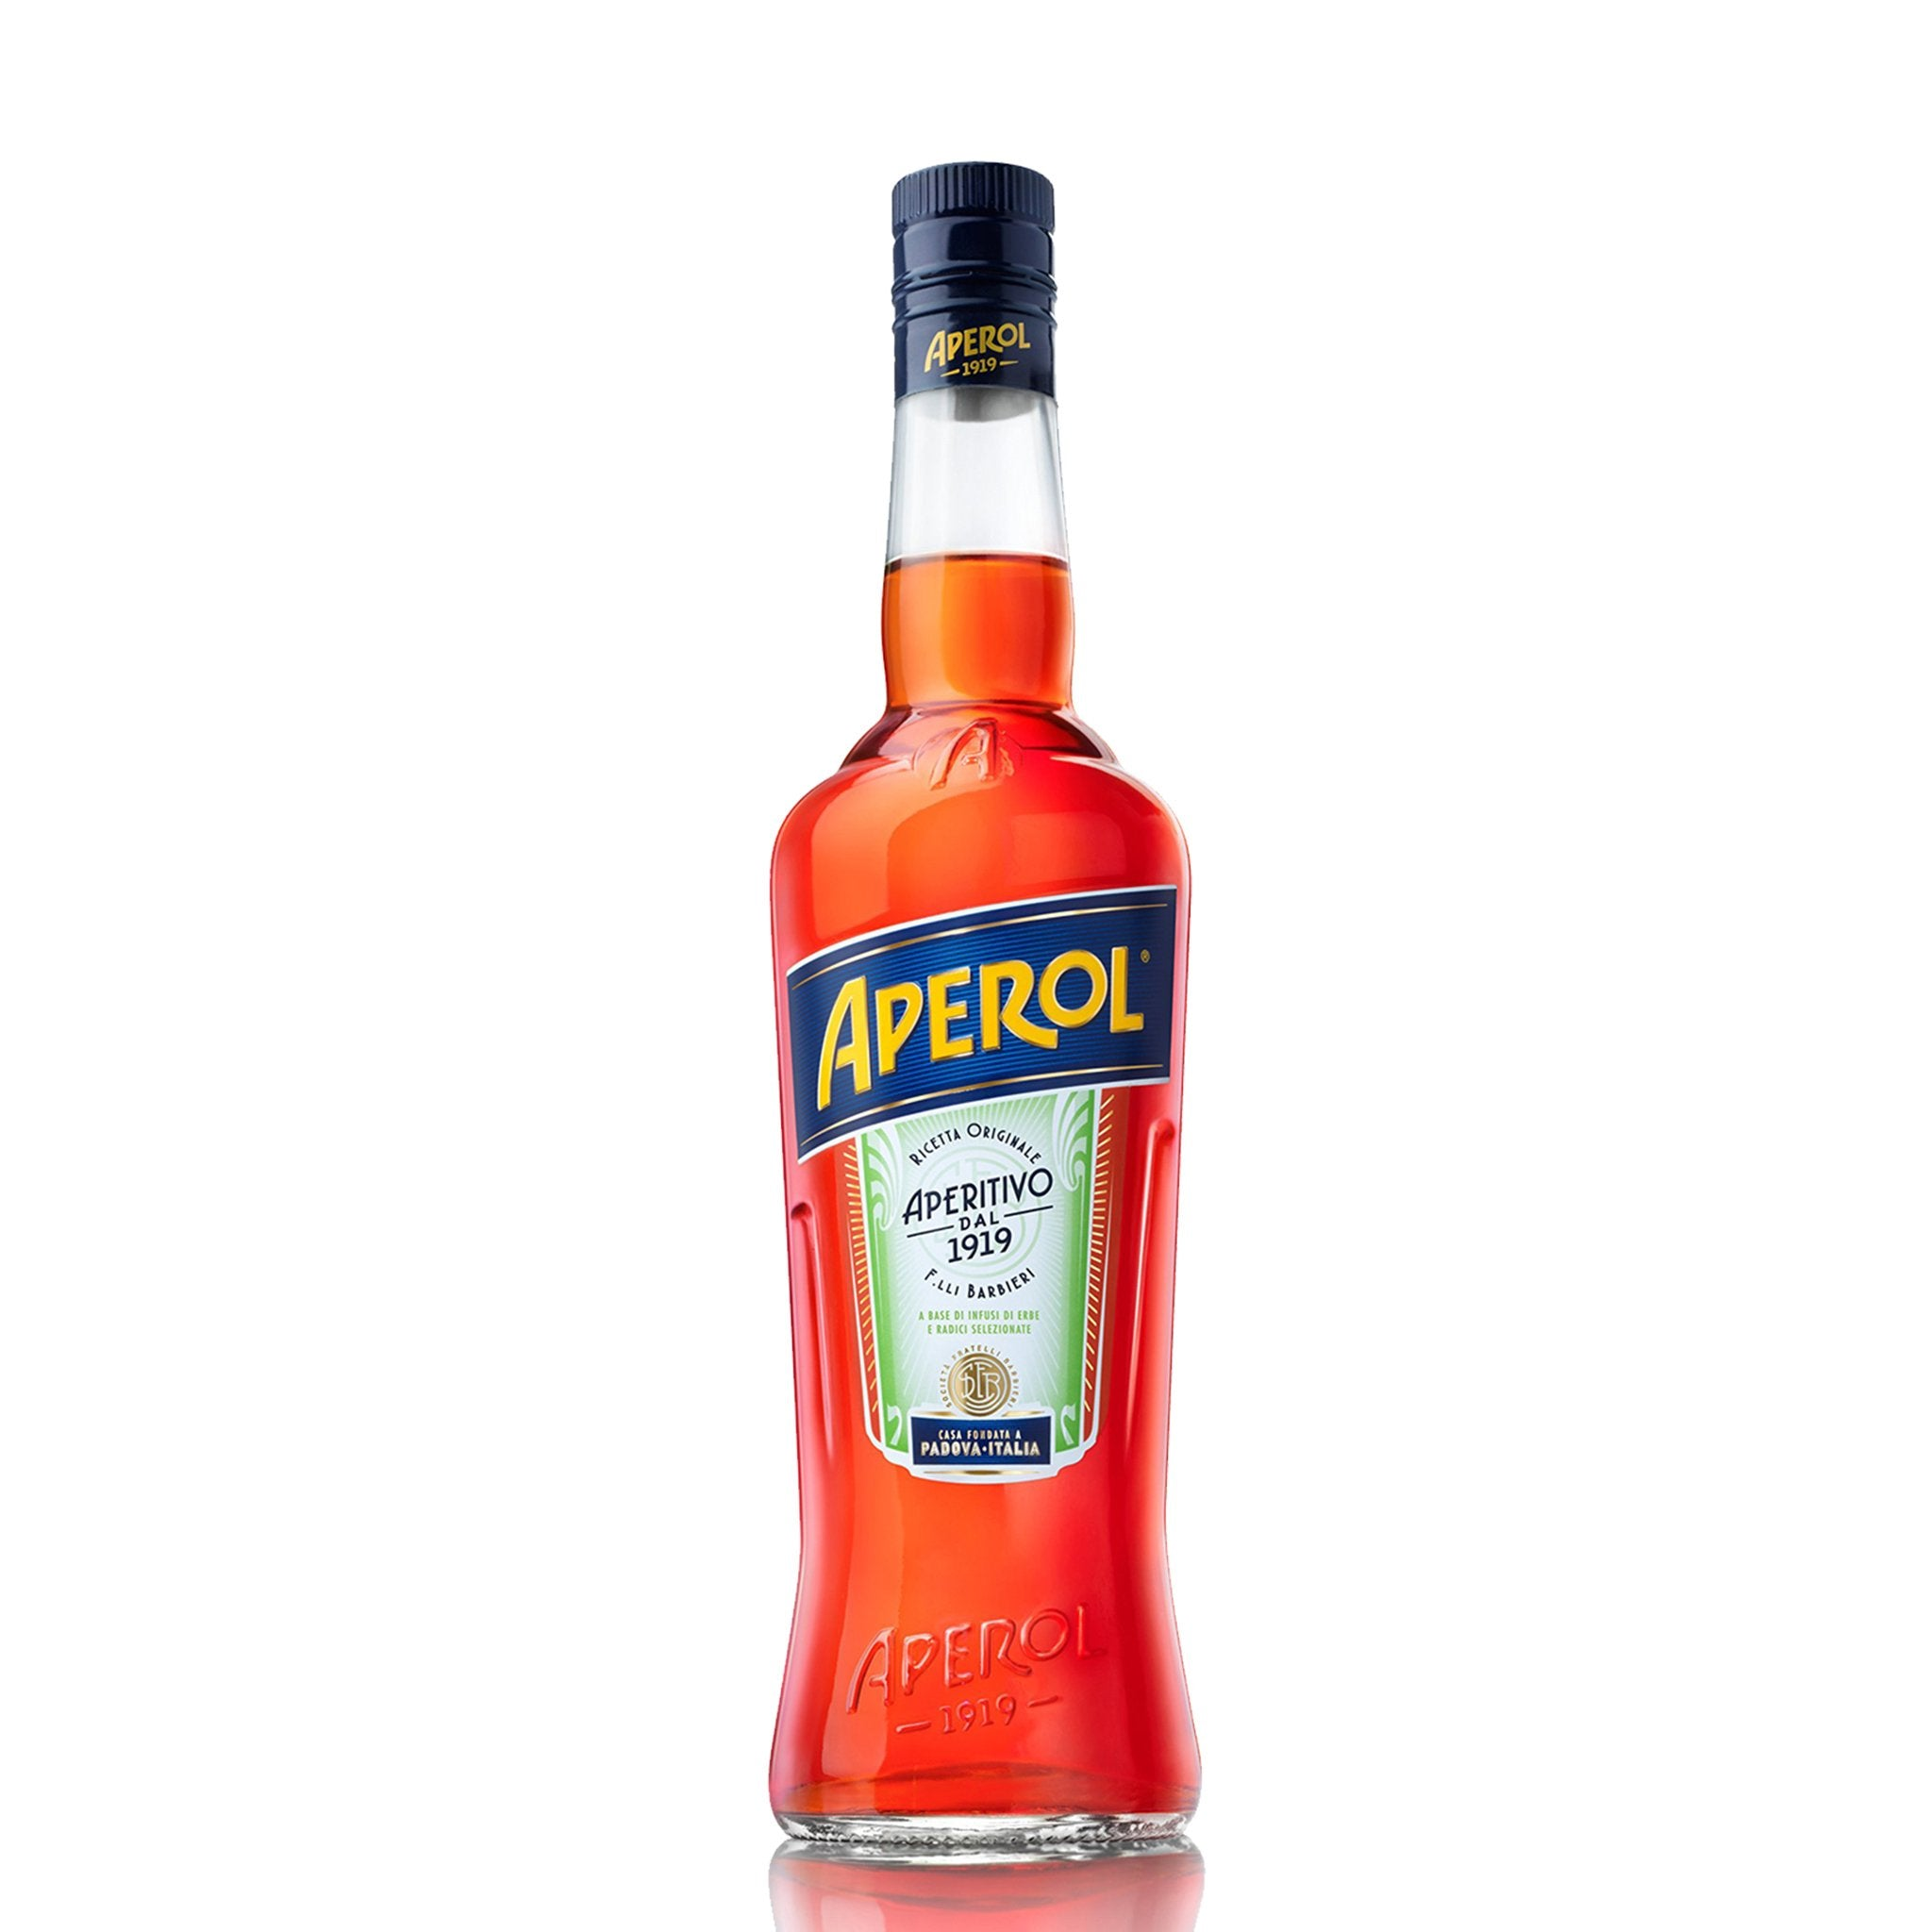 Aperol Aperitivo 70cl, Alcoholic Beverages - Image 0